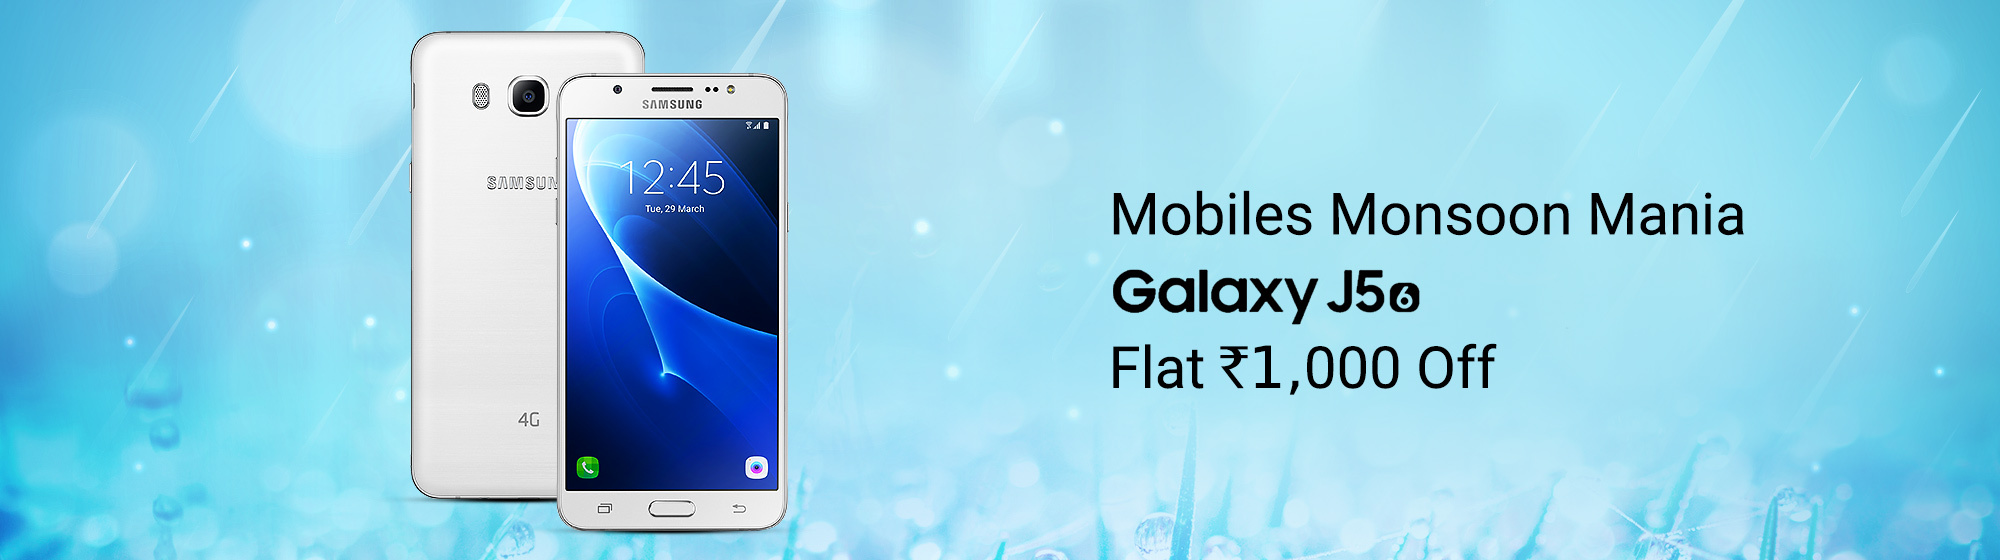 Flipkart Mobile Monsoon Mania Exciting offers on Smartphones